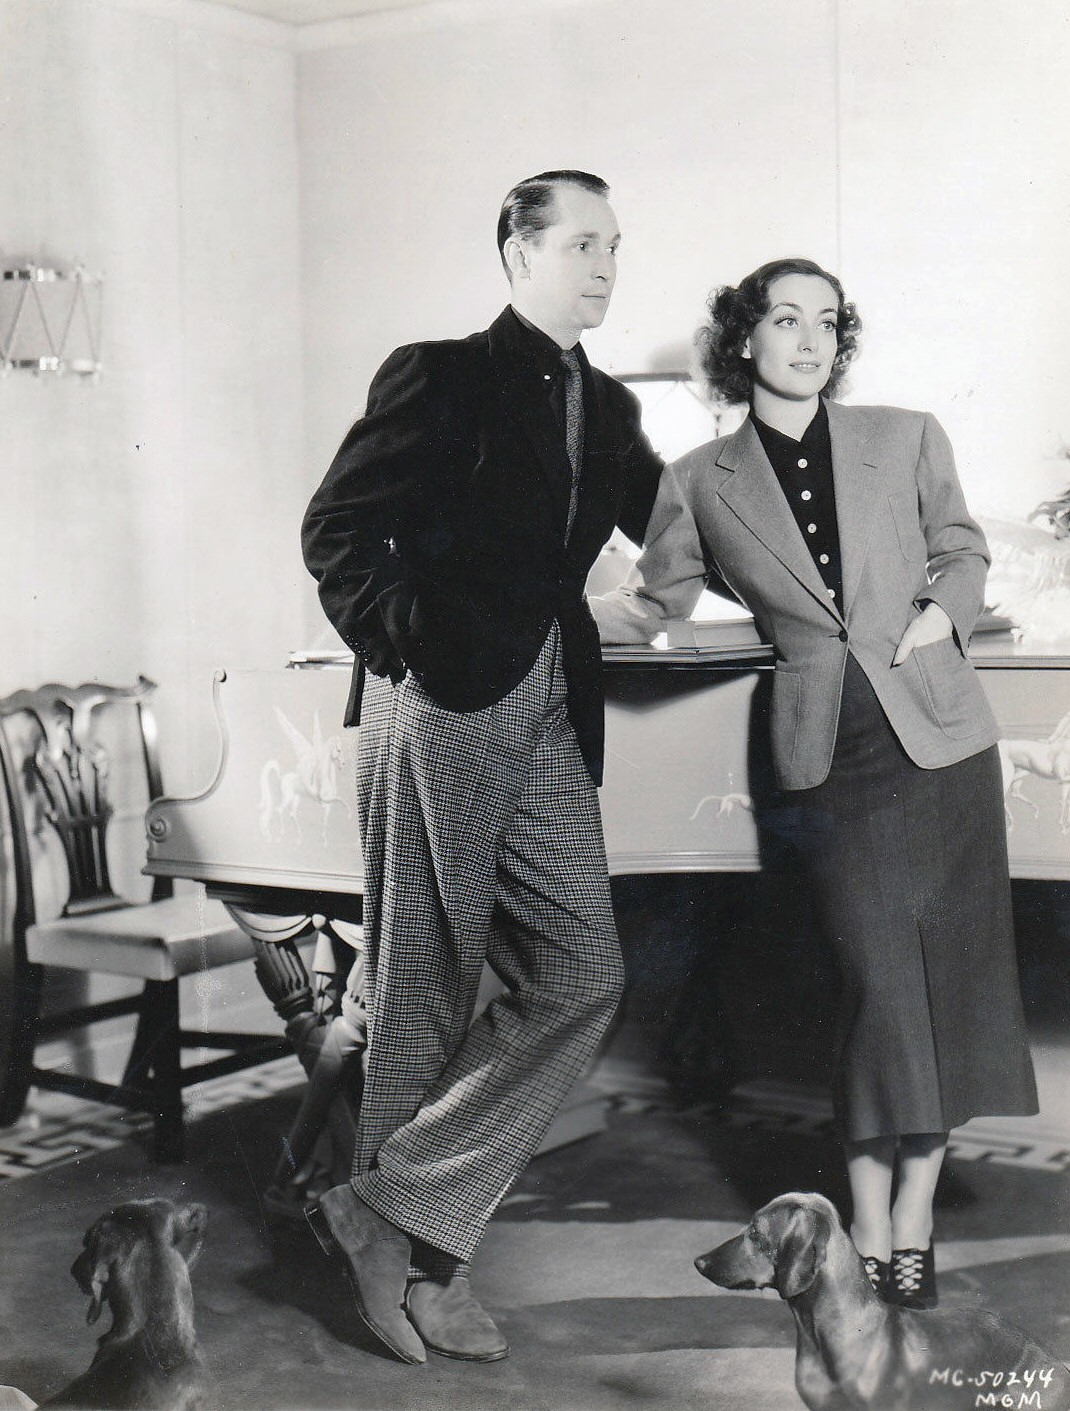 1936. Joan and Tone at home.